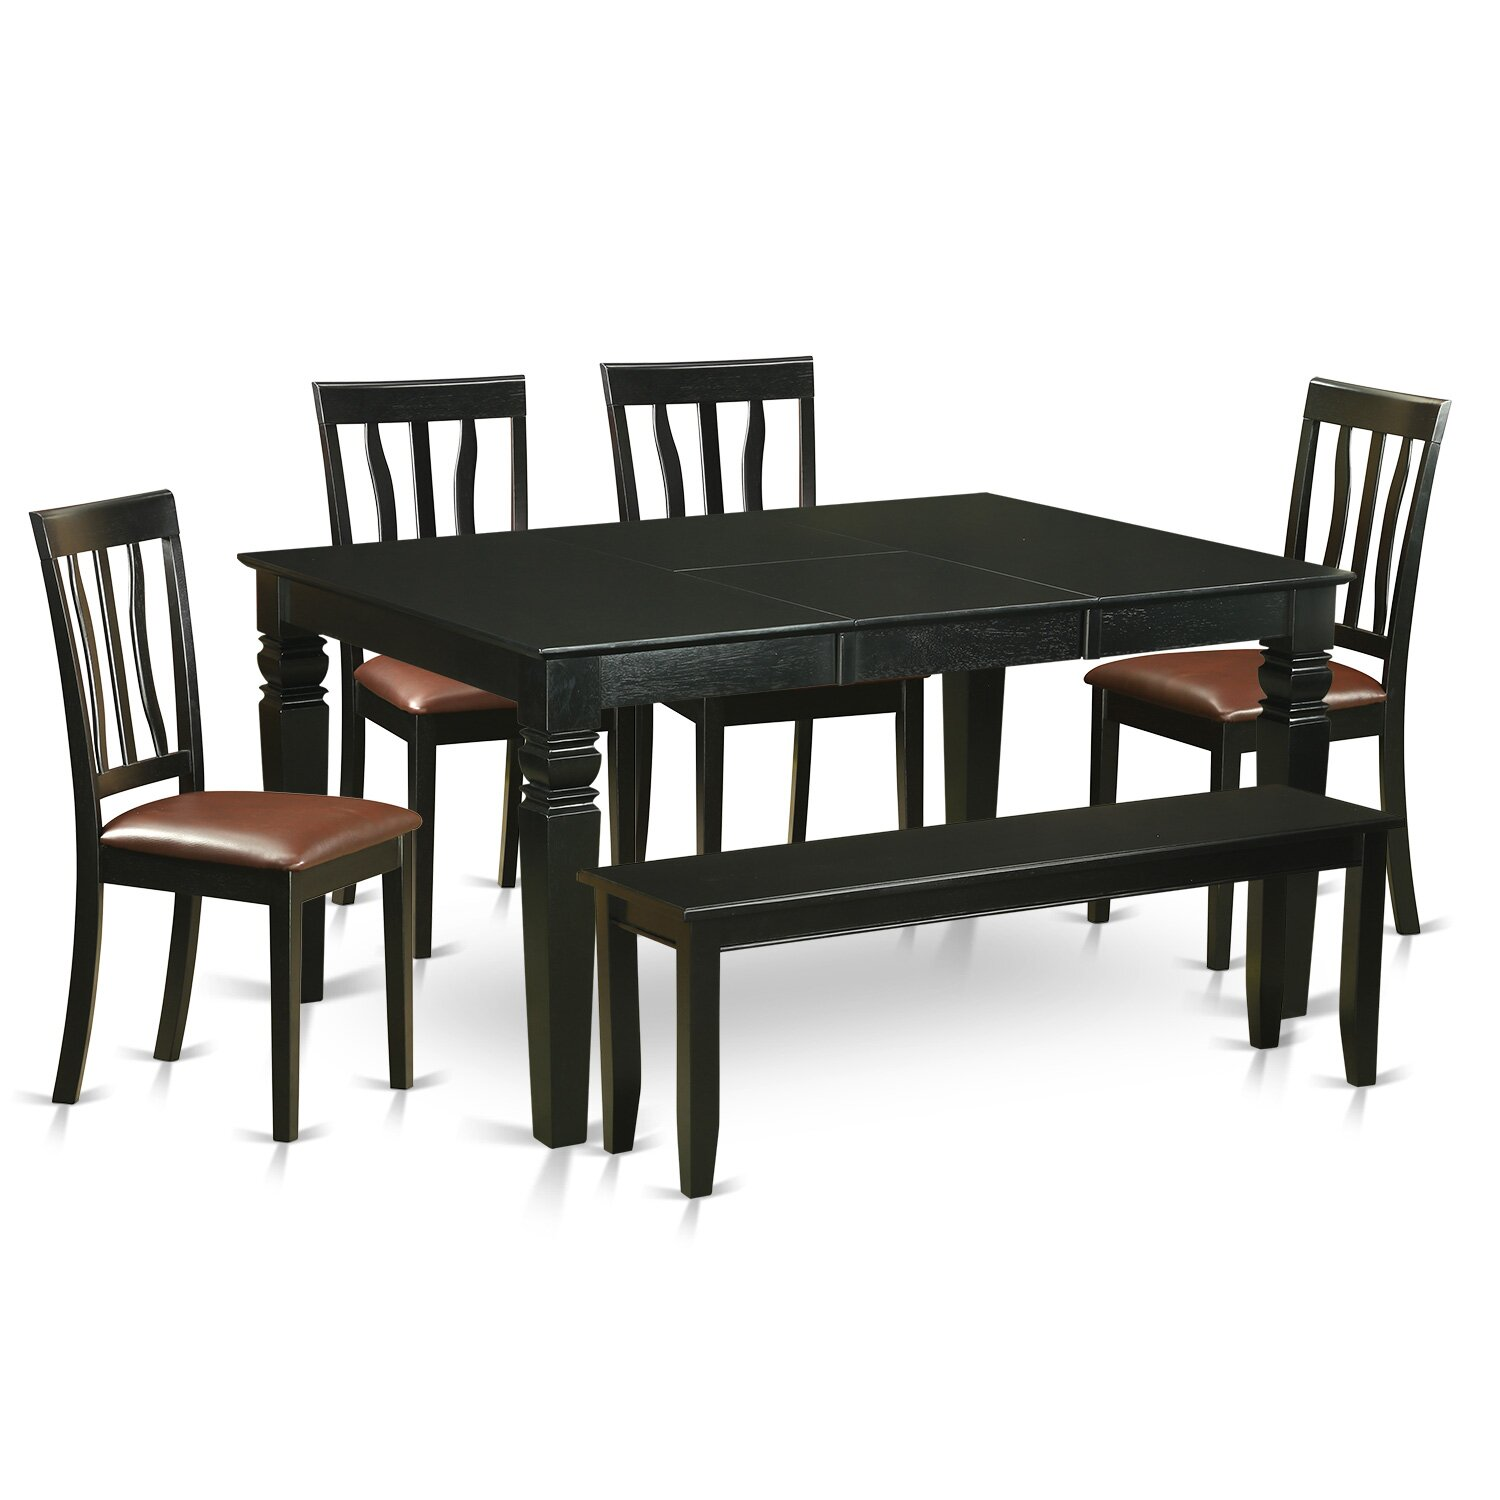 Wooden importers weston 6 piece dining set wayfair for Kitchen table set 6 chairs